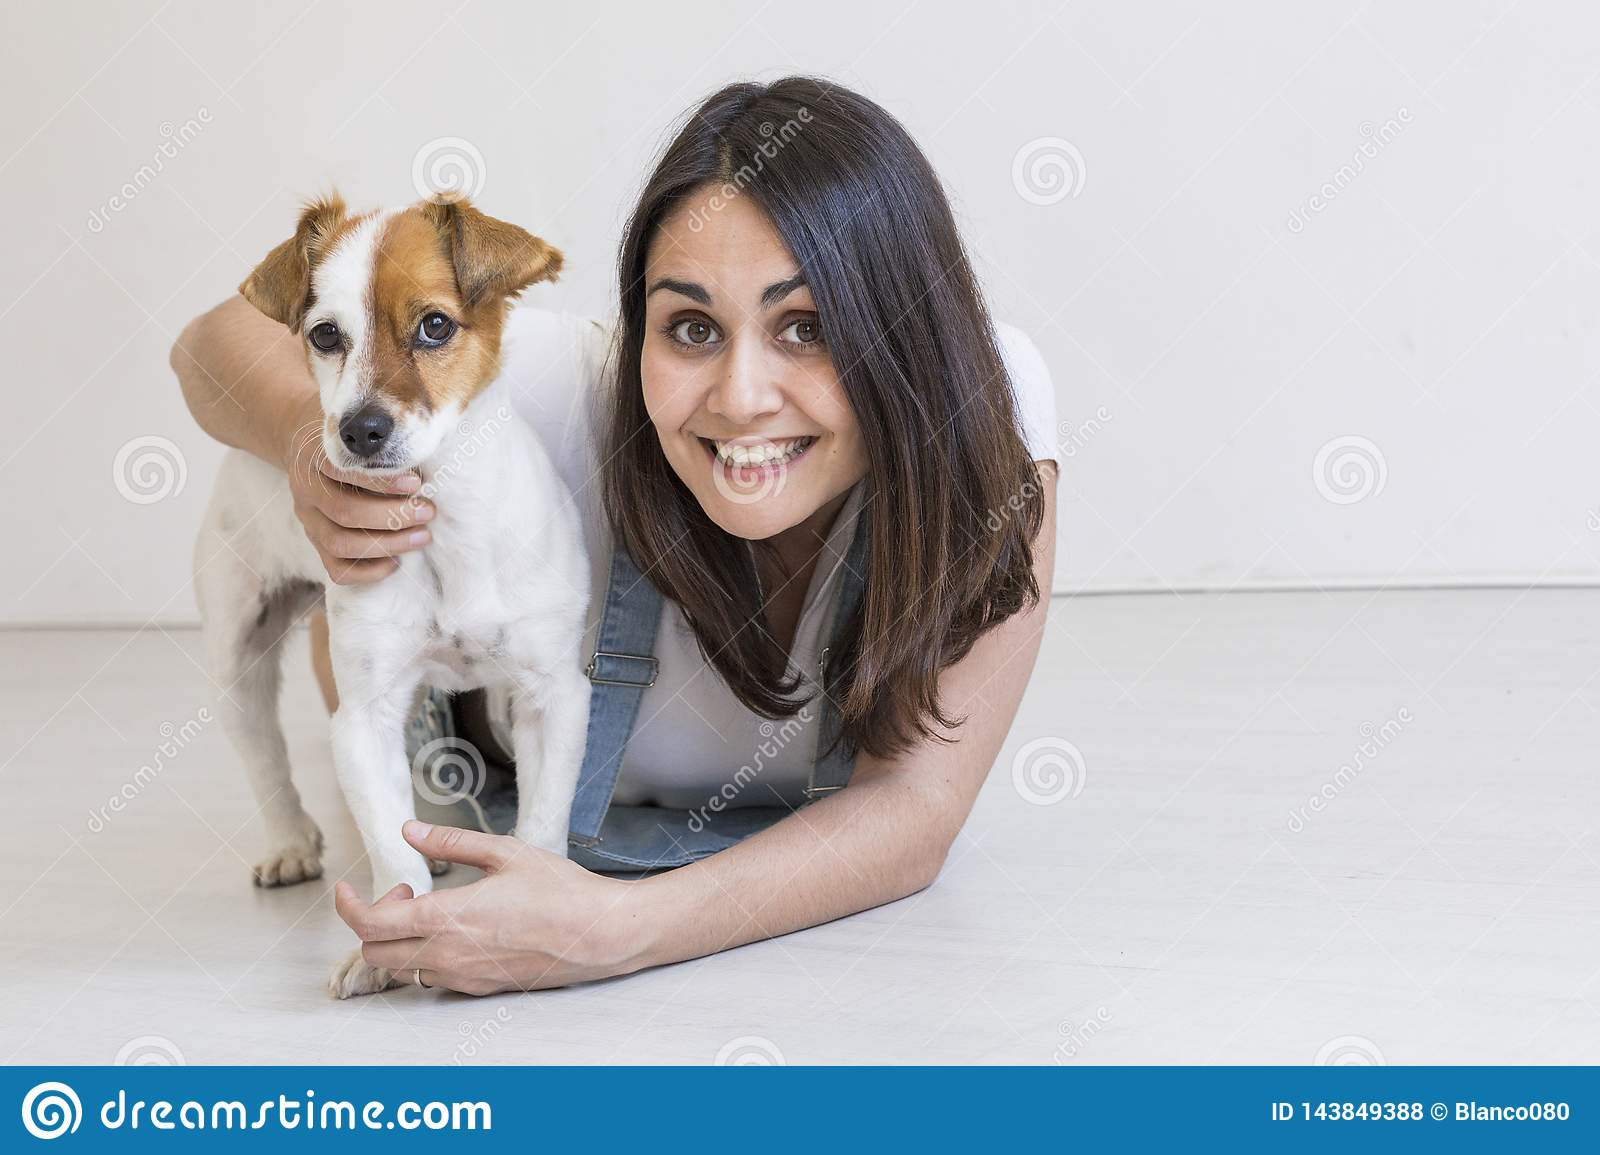 Beautiful young woman playing with her little cute dog at home. Lifestyle portrait. Love for animals concept. white background